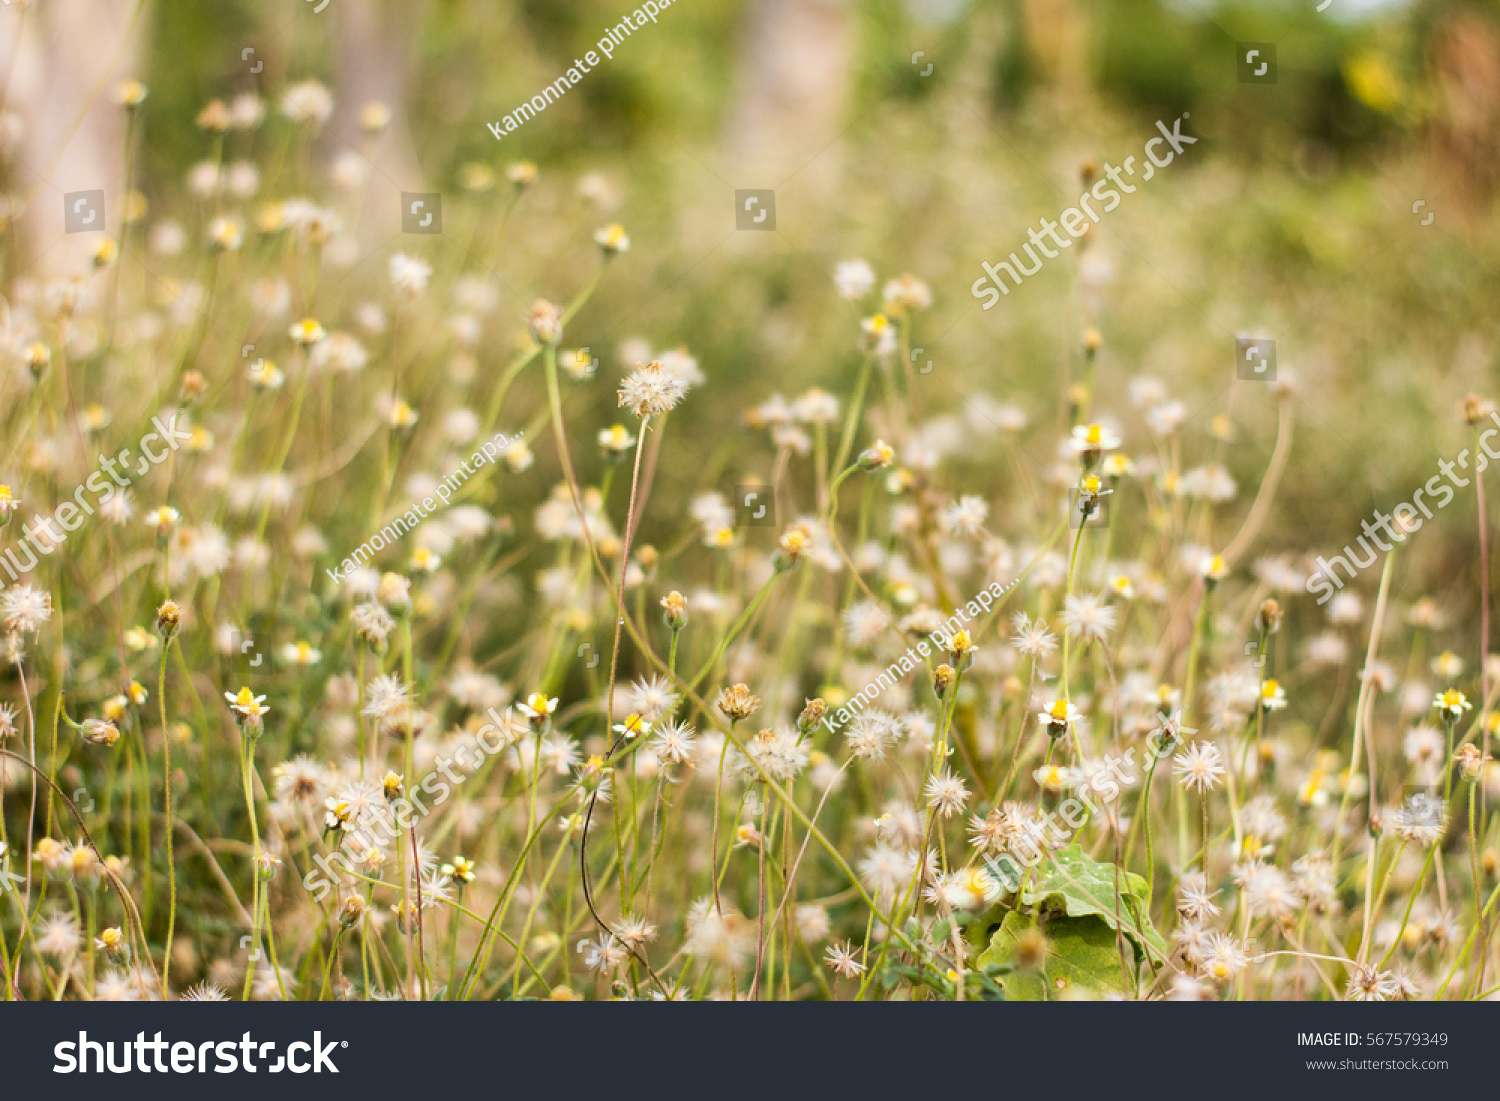 Grass And White Flowers Wallpaper Ez Canvas